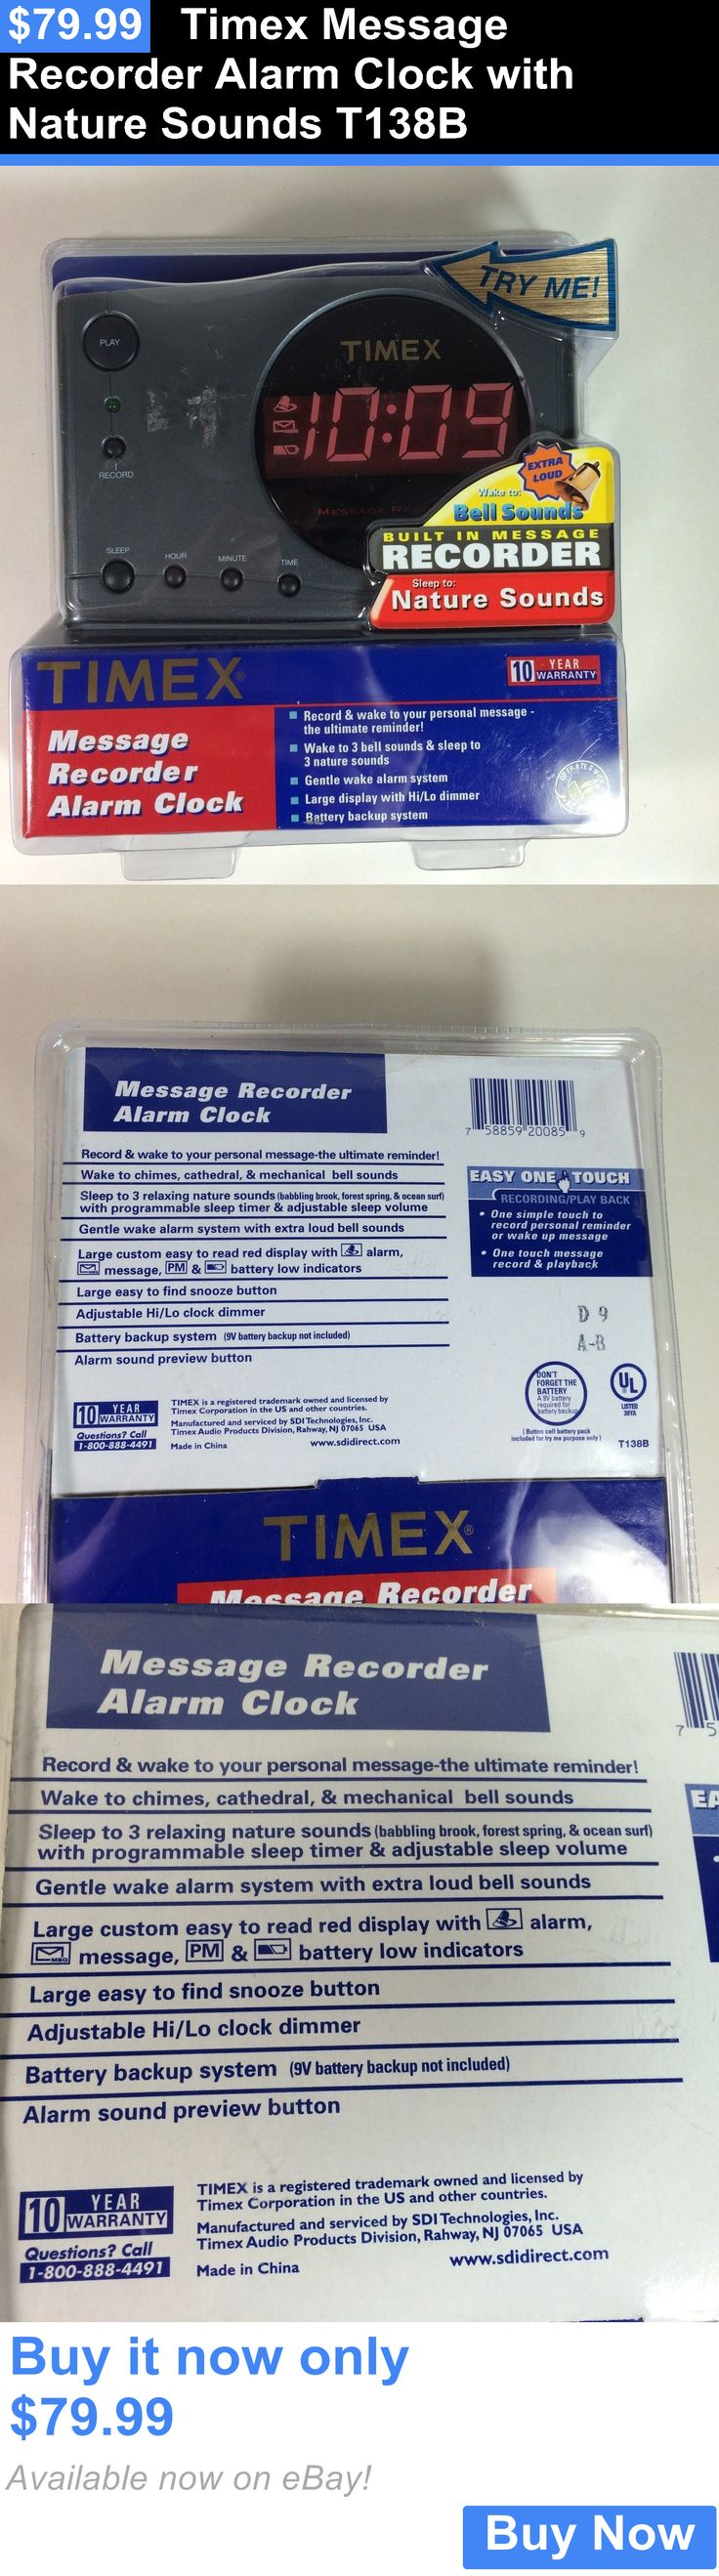 Digital Clocks and Clock Radios: Timex Message Recorder Alarm Clock With Nature Sounds T138b BUY IT NOW ONLY: $79.99